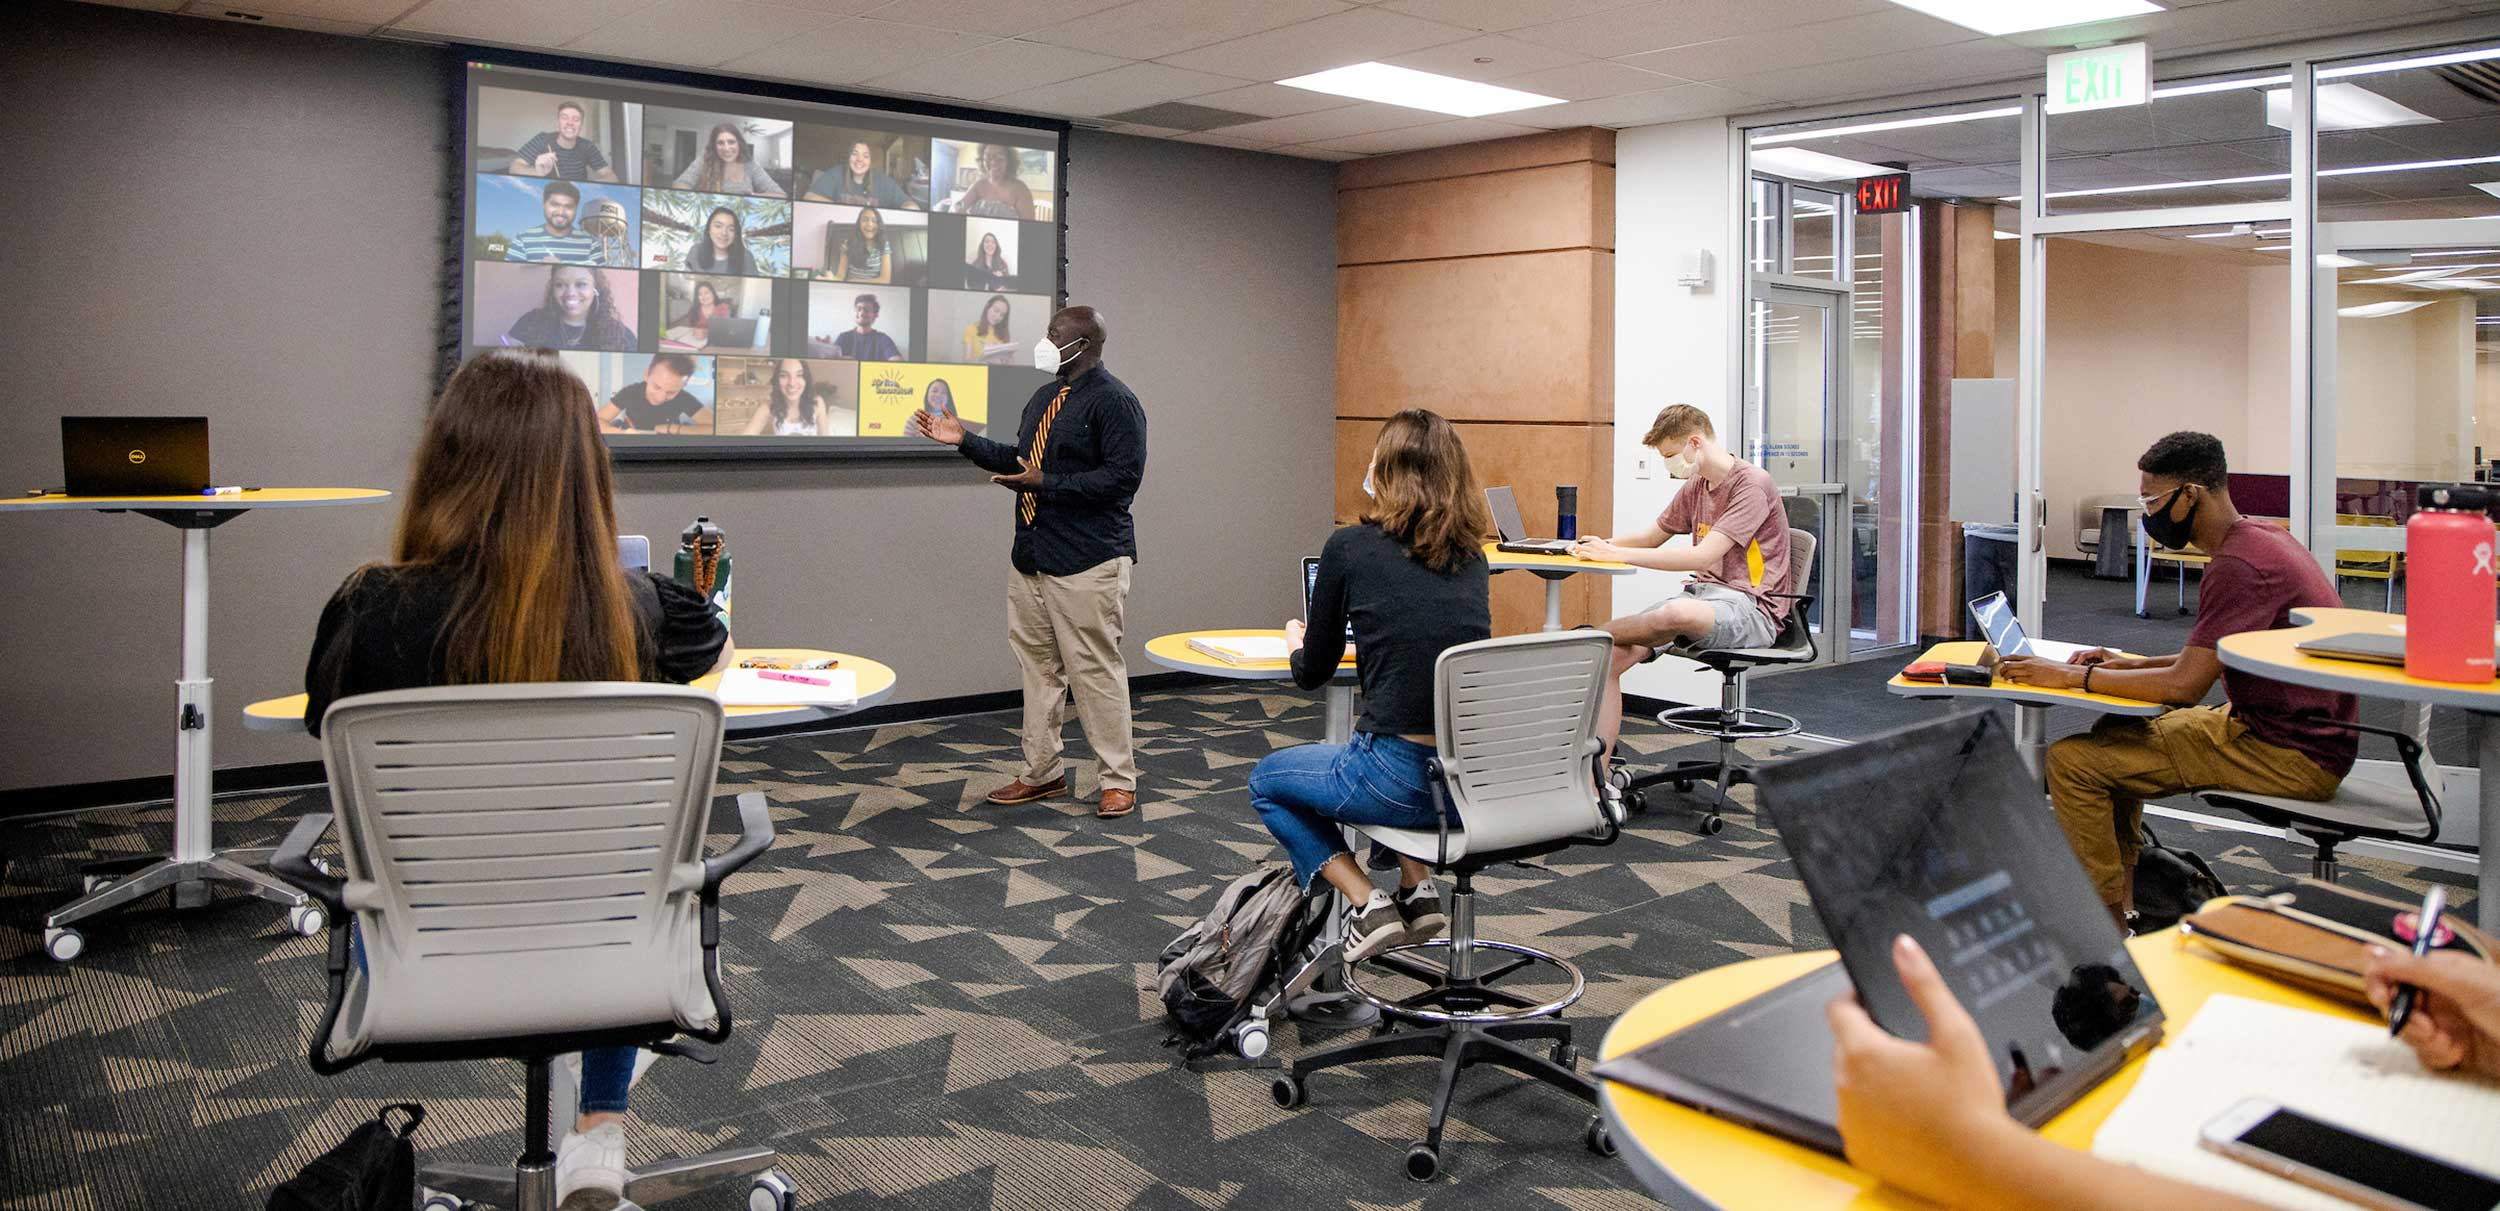 A teacher stands at the front of a class, where on screen we see the faces of remote participants and in-person participants physically in the classroom